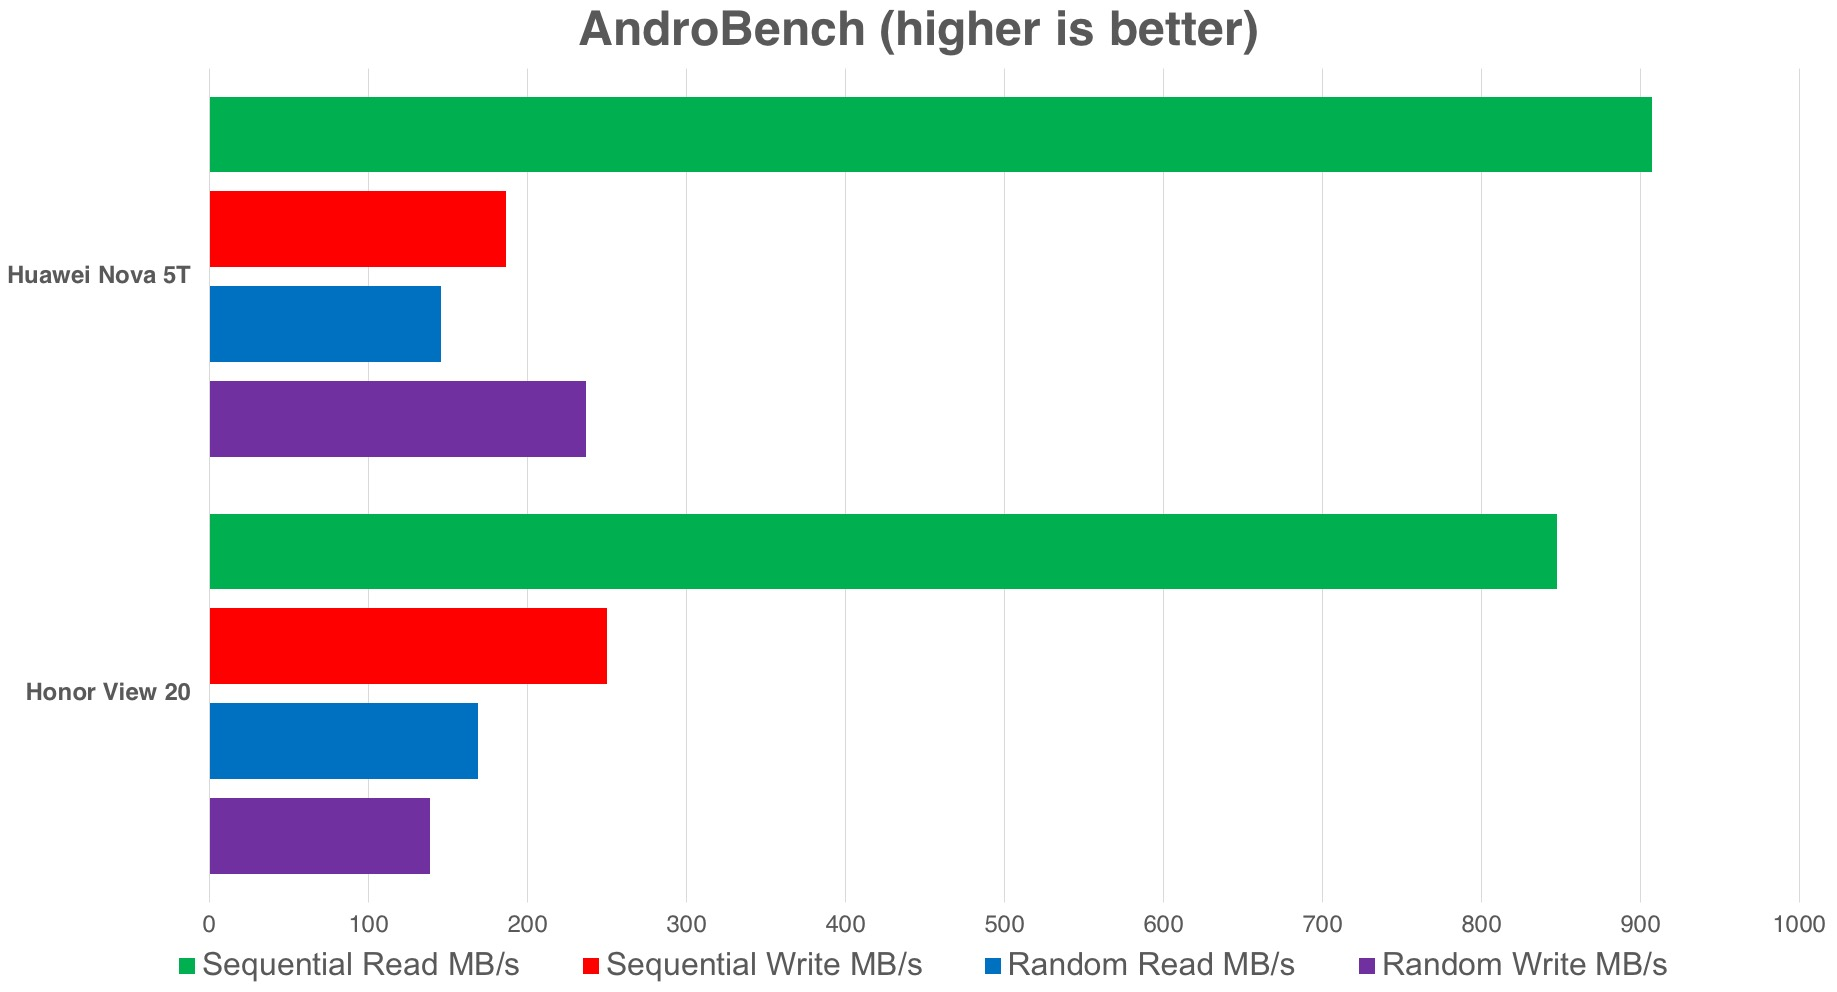 The results from AndroBench proved inconclusive, so we'll put the discrepancies down to differences in software or drivers.